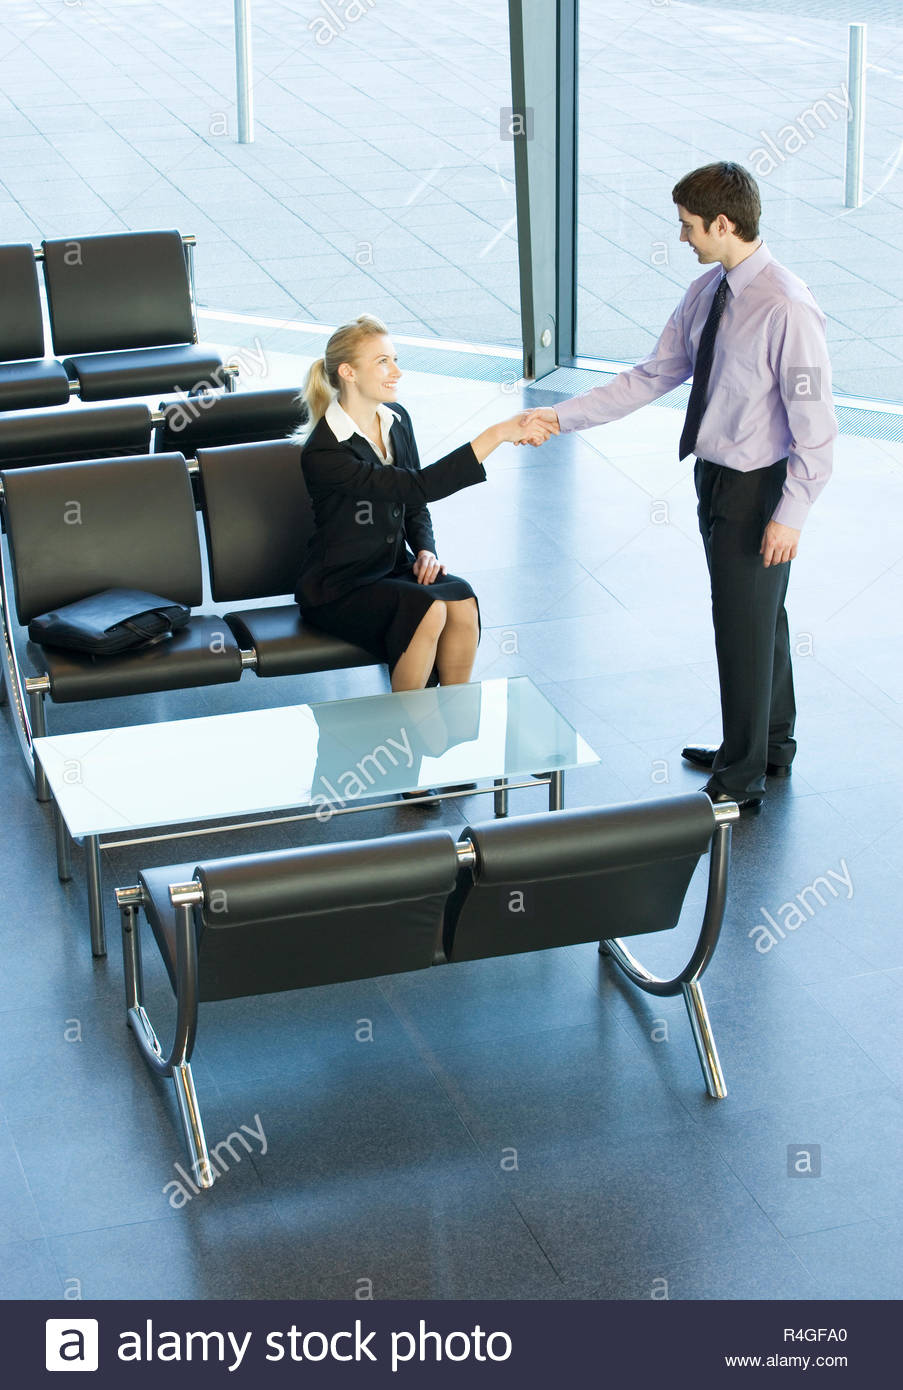 A businessman greeting a client or job candidate - Stock Image